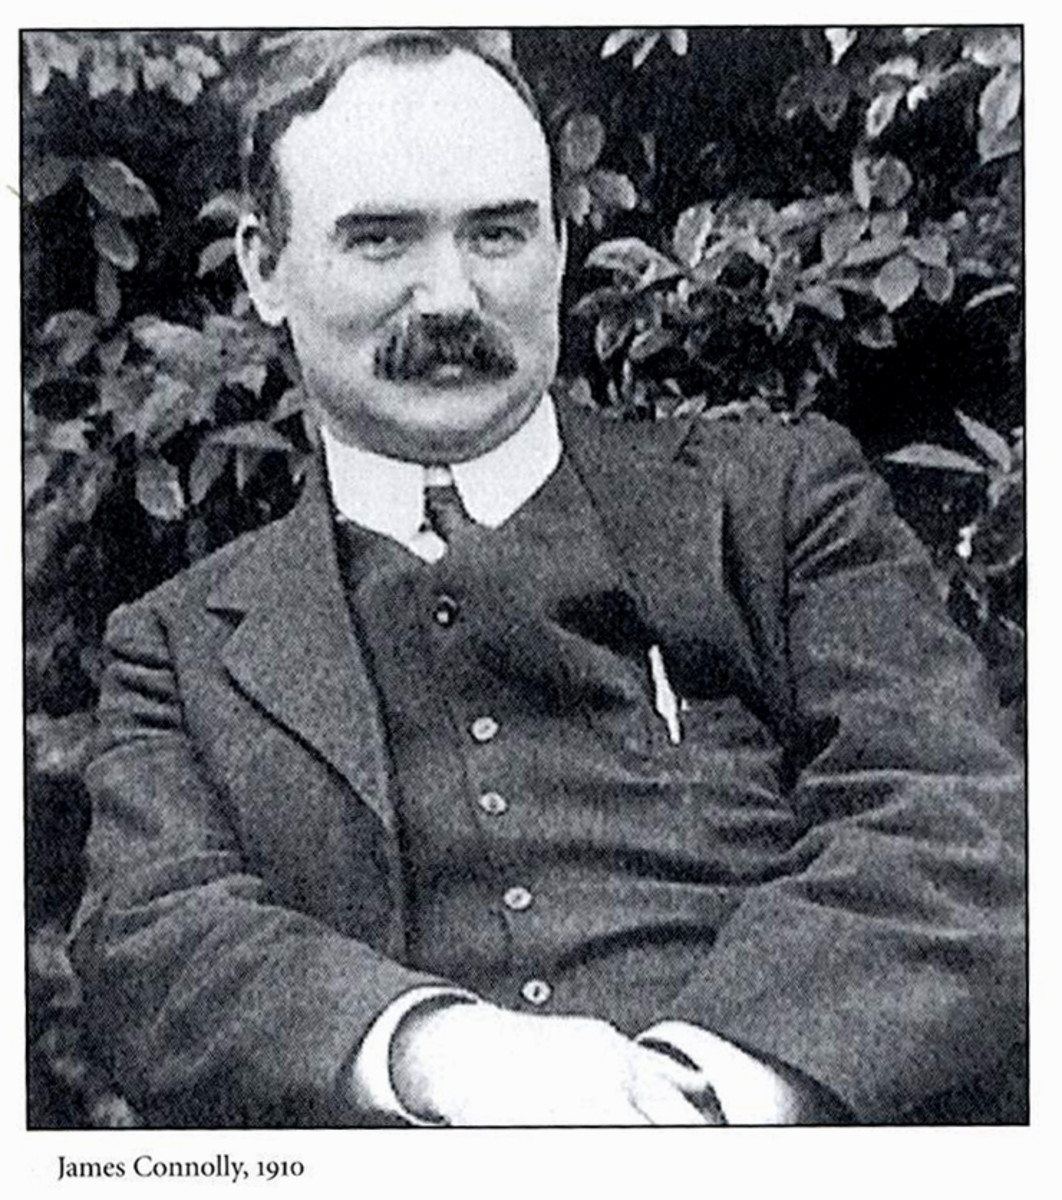 James Connolly and The 1916 Easter Rising in Ireland